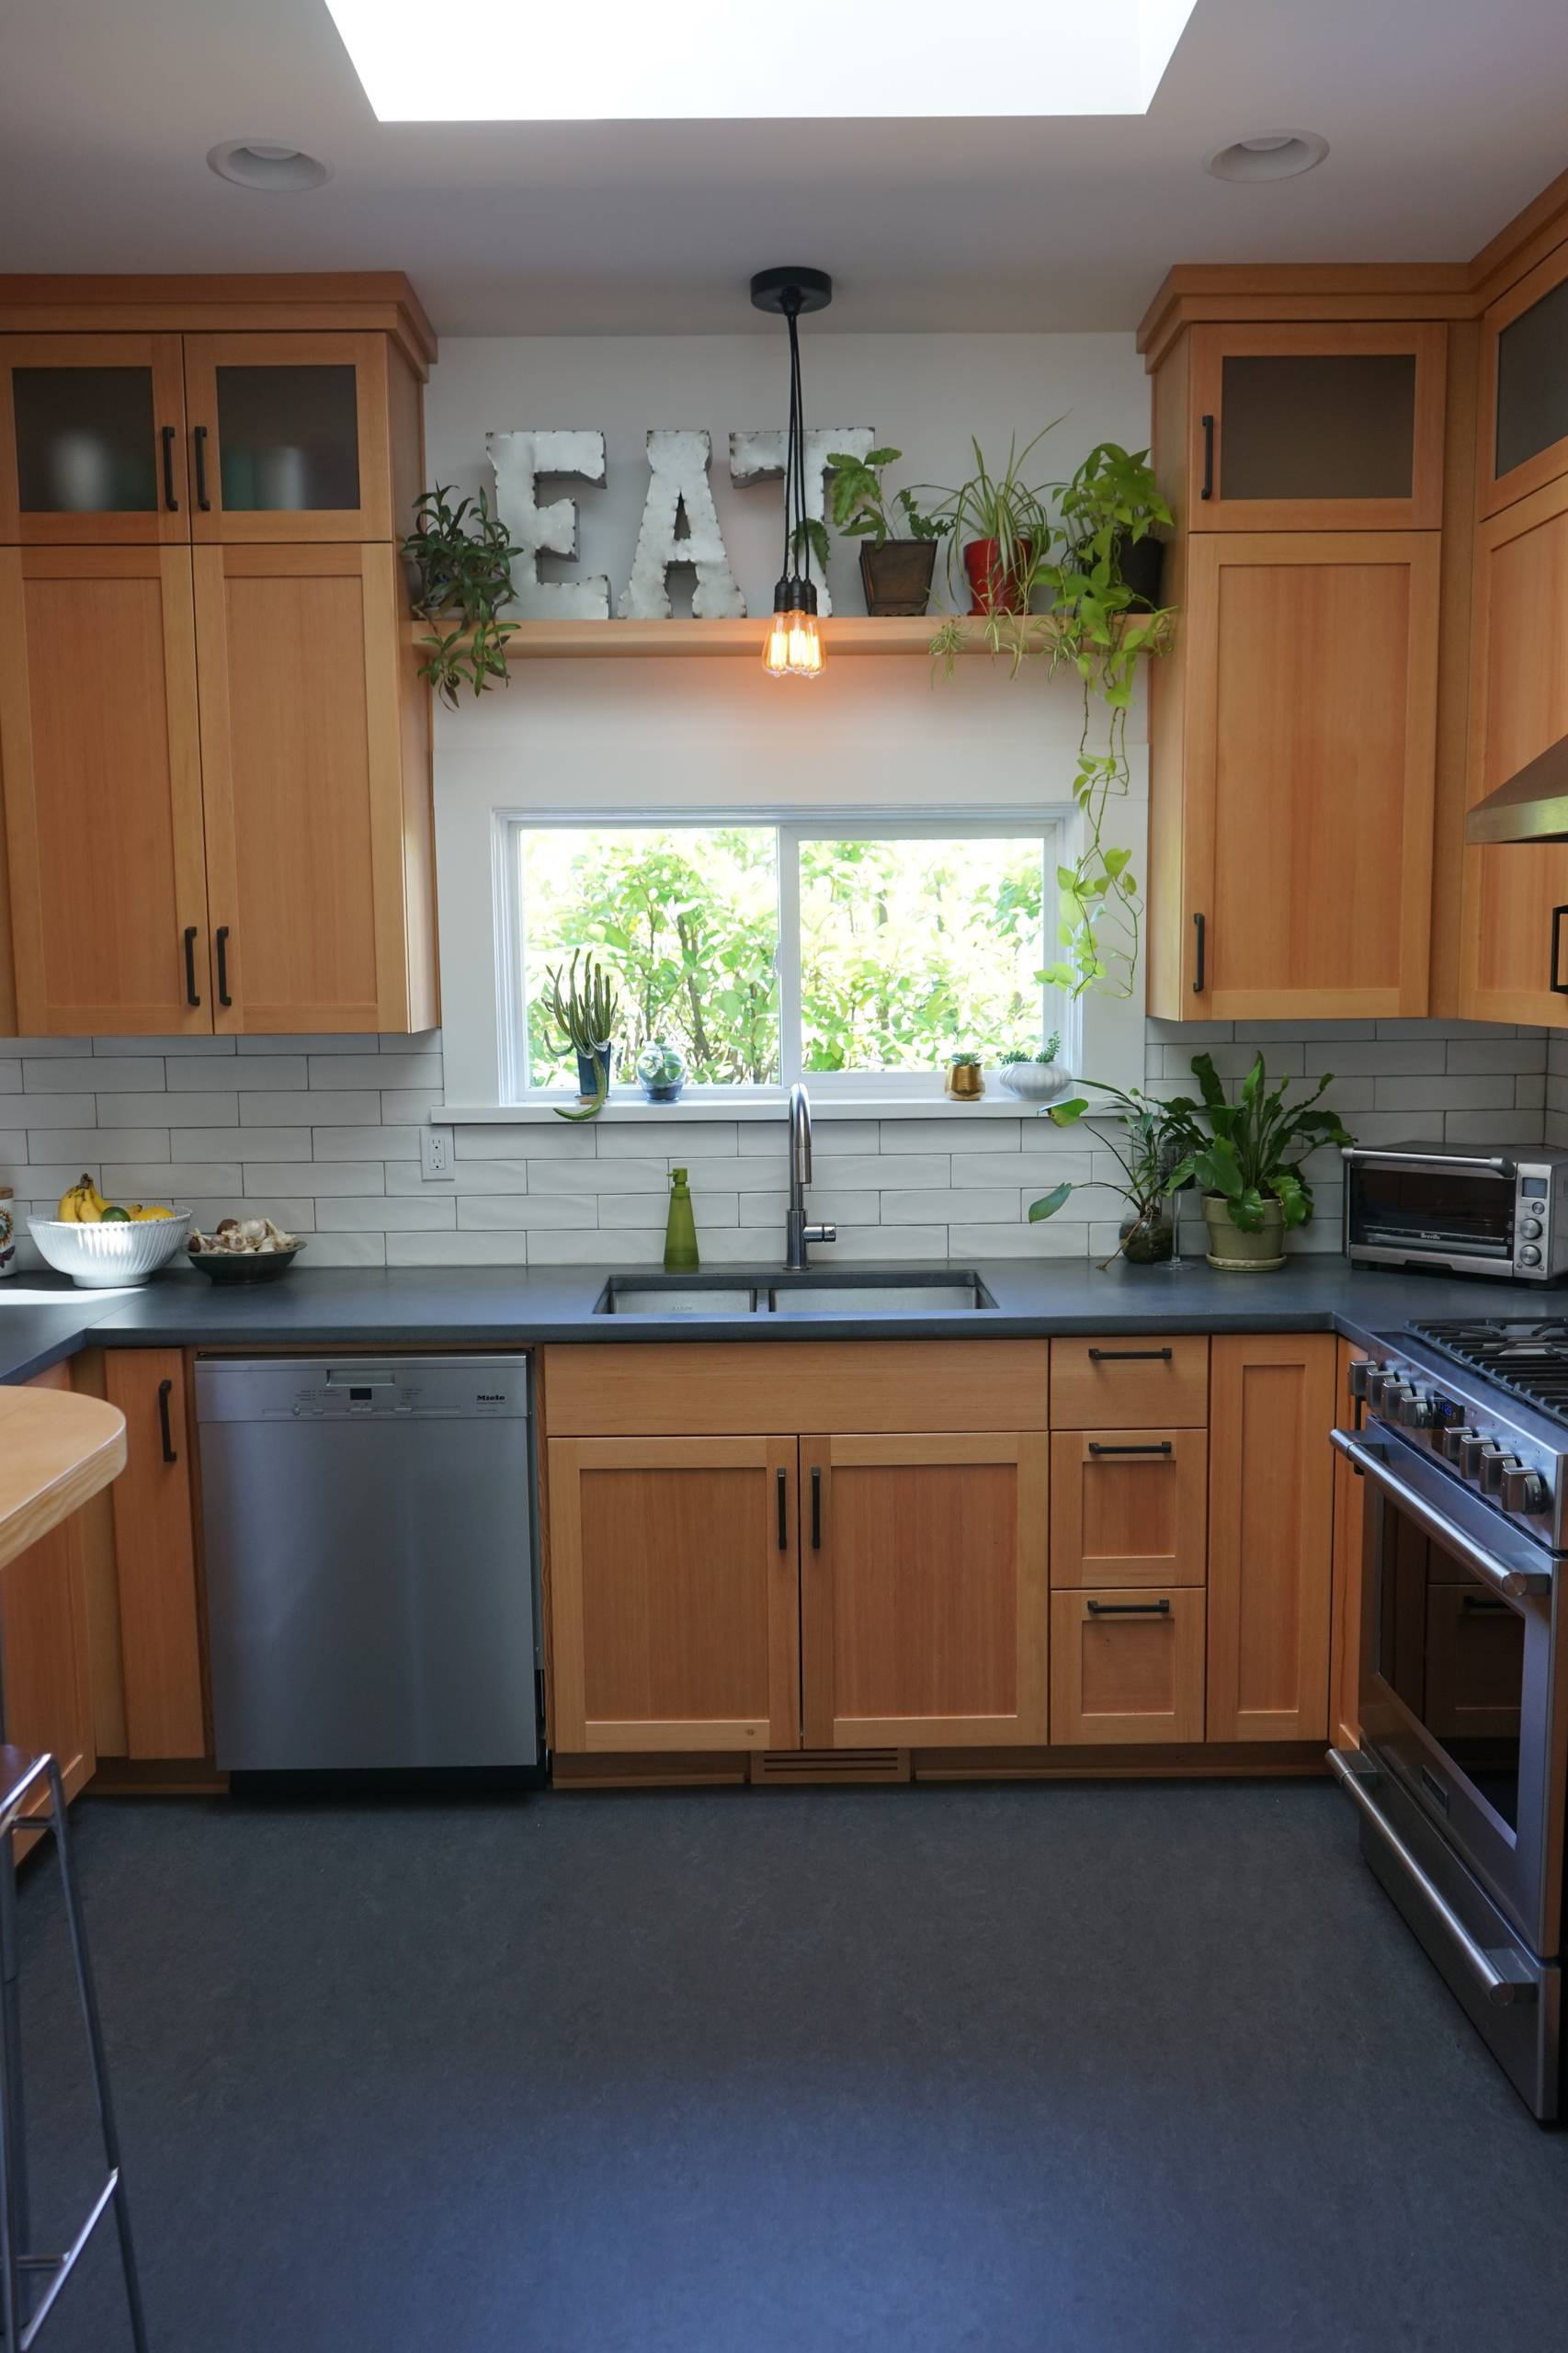 9 Beautiful Small Enclosed Kitchen Pictures & Ideas   July, 9 ...